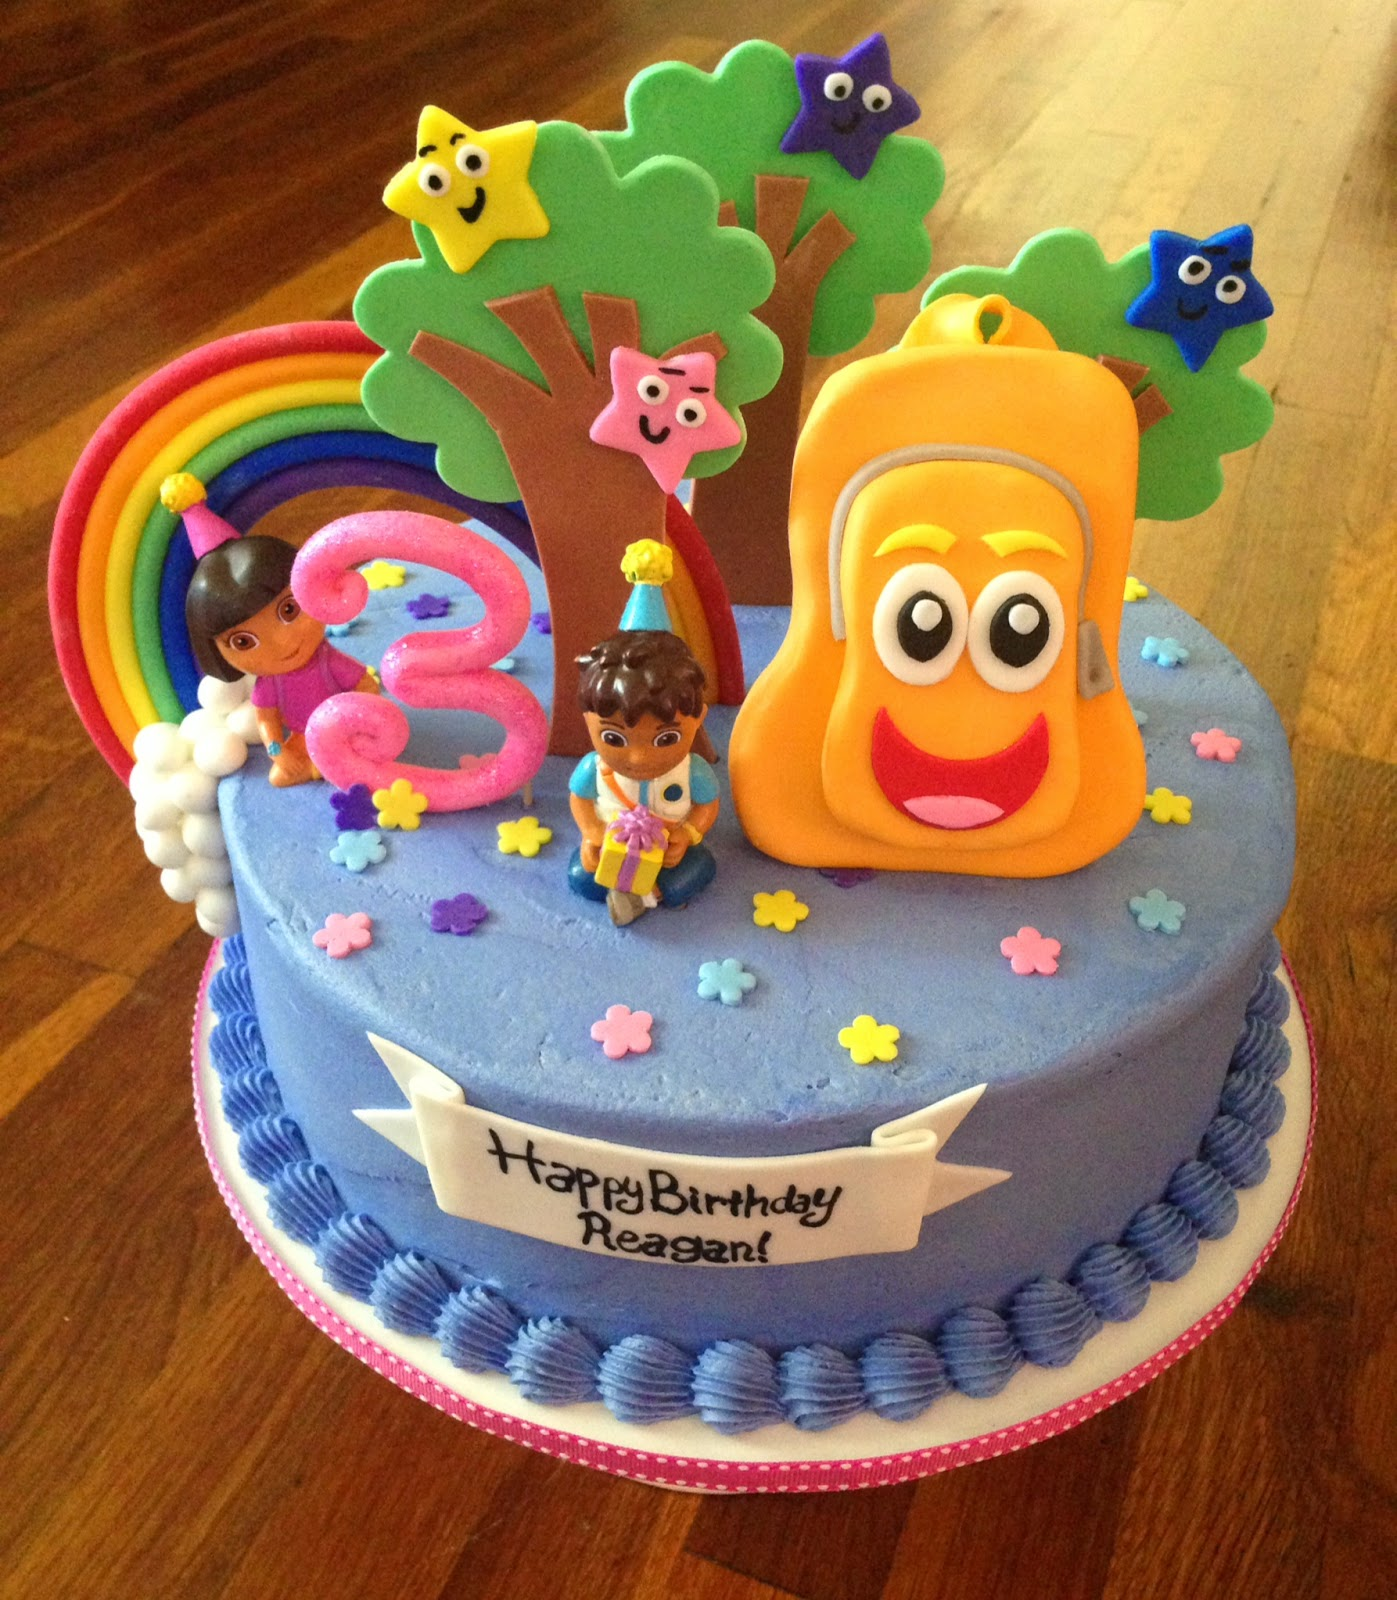 Chocolate Birthday Cake With Filling